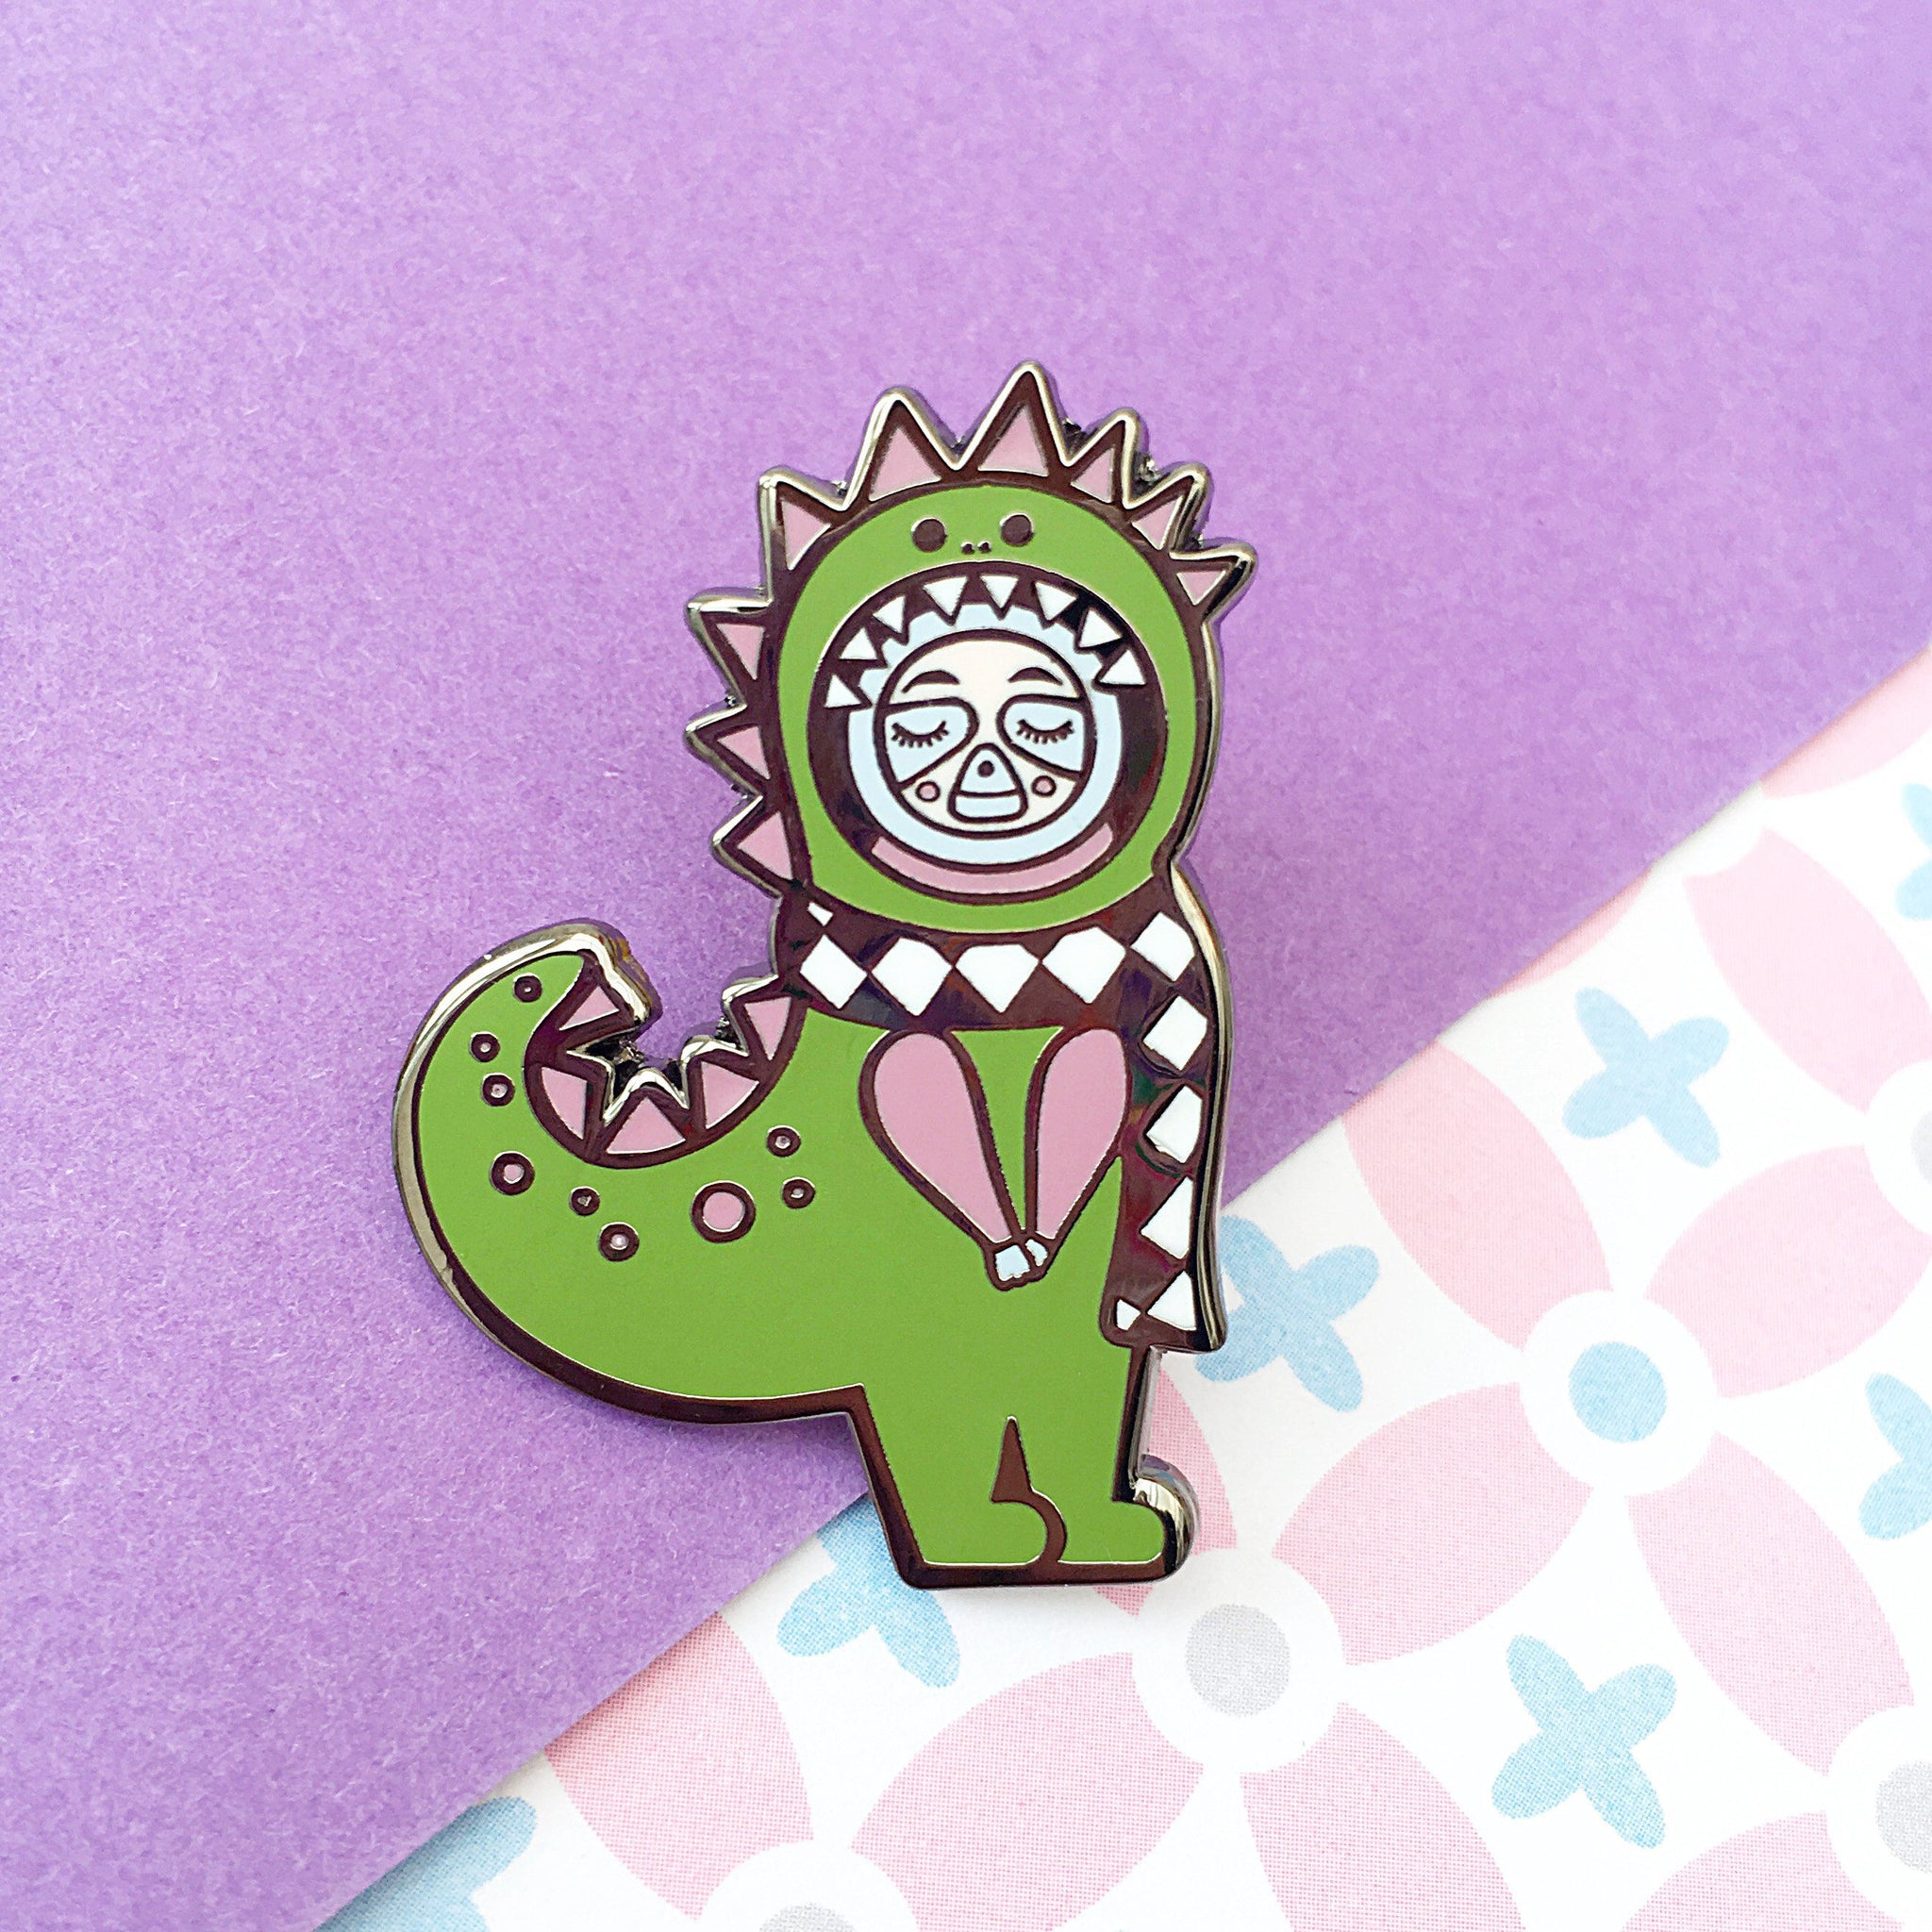 Dino Sloth Enamel Pin (Green)